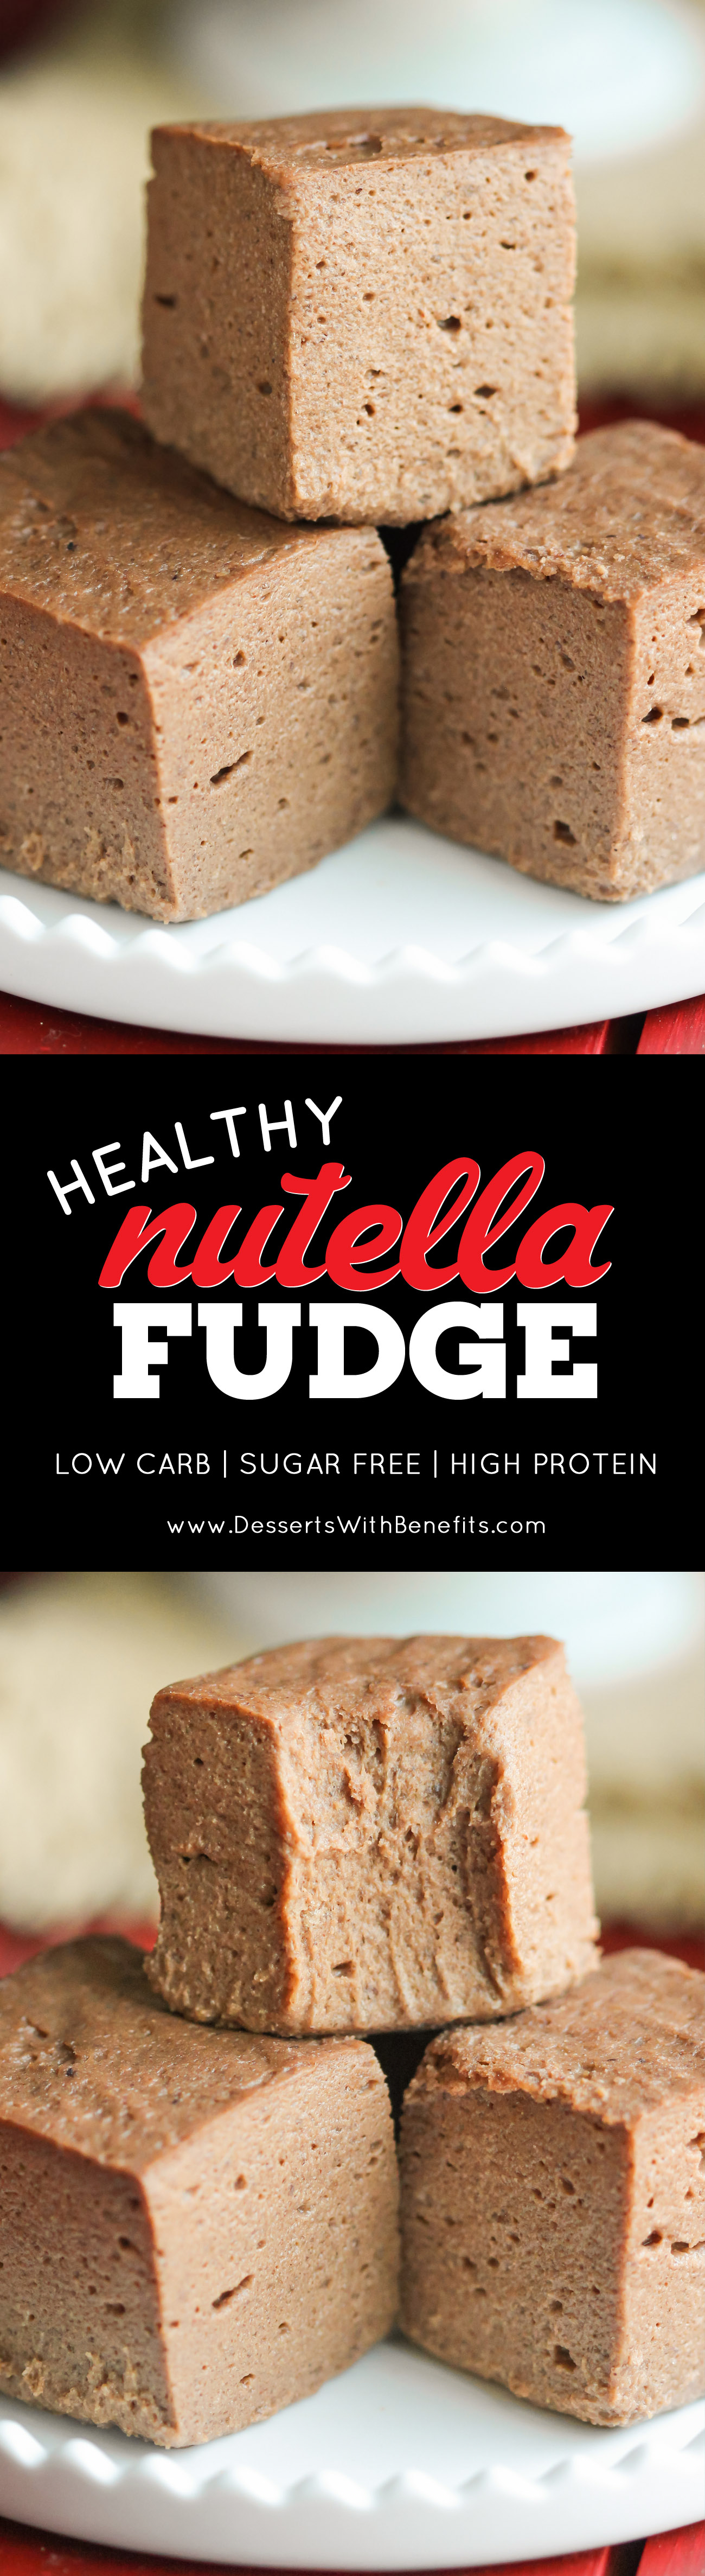 15 Healthy Nutella Recipes | This Healthy Nutella Fudge is sweet, chocolatey, fluffy, and delicious. Made with 2 secret ingredients! This addicting fudge is packed full of protein, fiber, and healthy fats, and none of the added sugar or artificial ingredients. It sure doesn't taste low calorie, sugar free, low carb, high protein, high fiber, and gluten free! -- Healthy Dessert Recipes at the Desserts With Benefits Blog (www.DessertsWithBenefits.com)